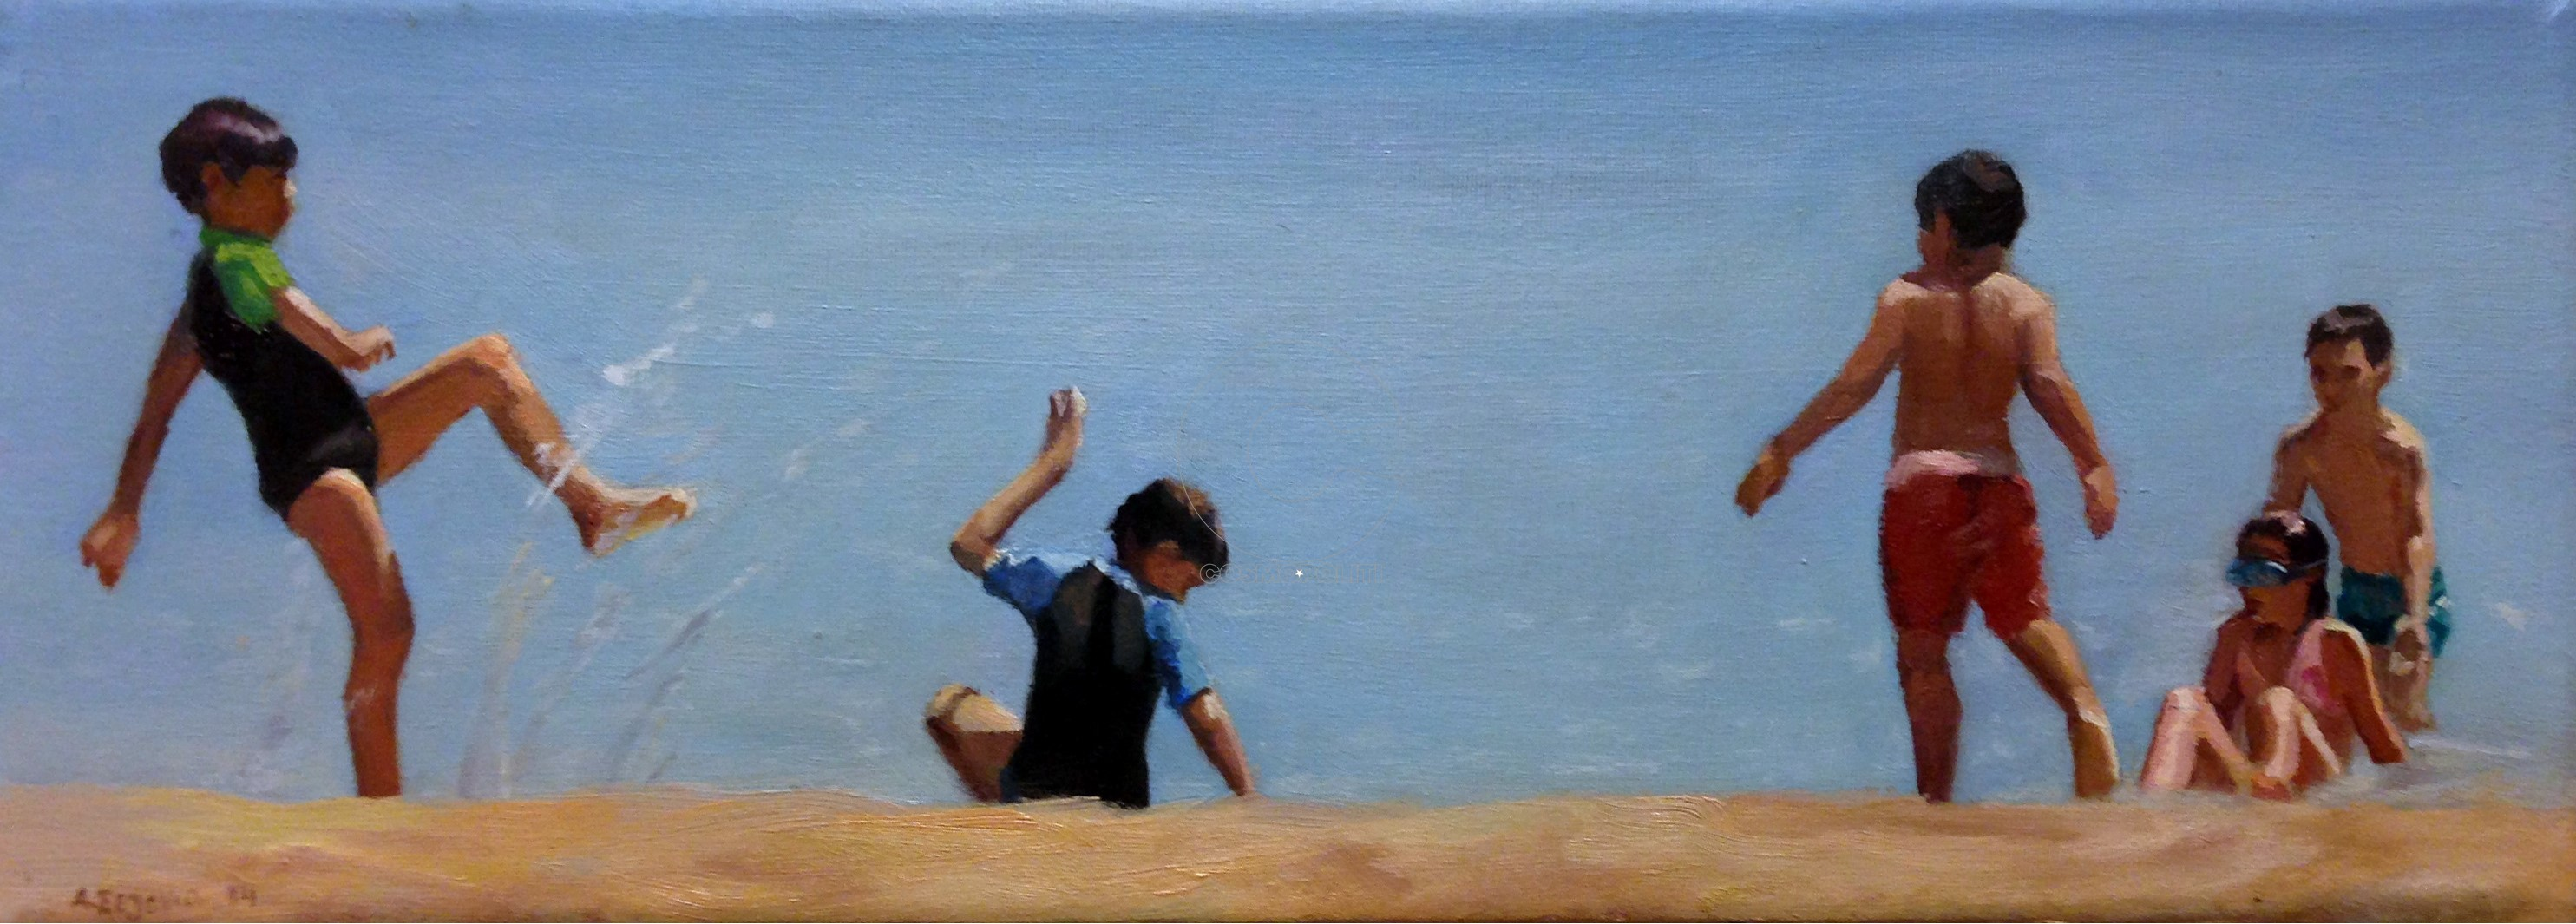 Afroditi Sezenia, At the beach , 15x40cm,Oil on canvas